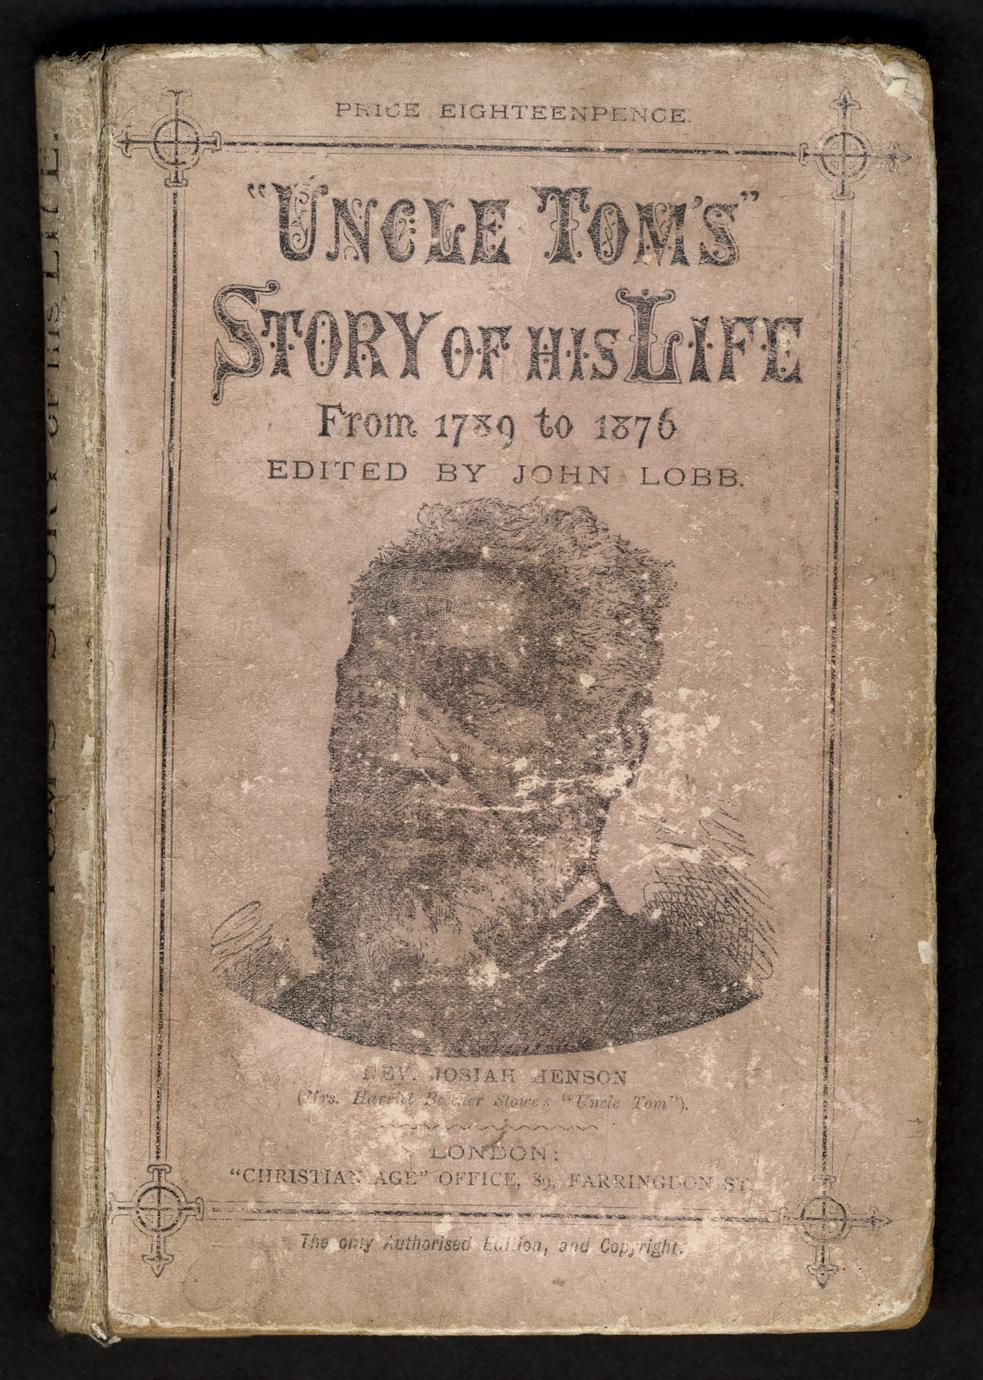 Uncle Tom's story of his life (1 of 4)